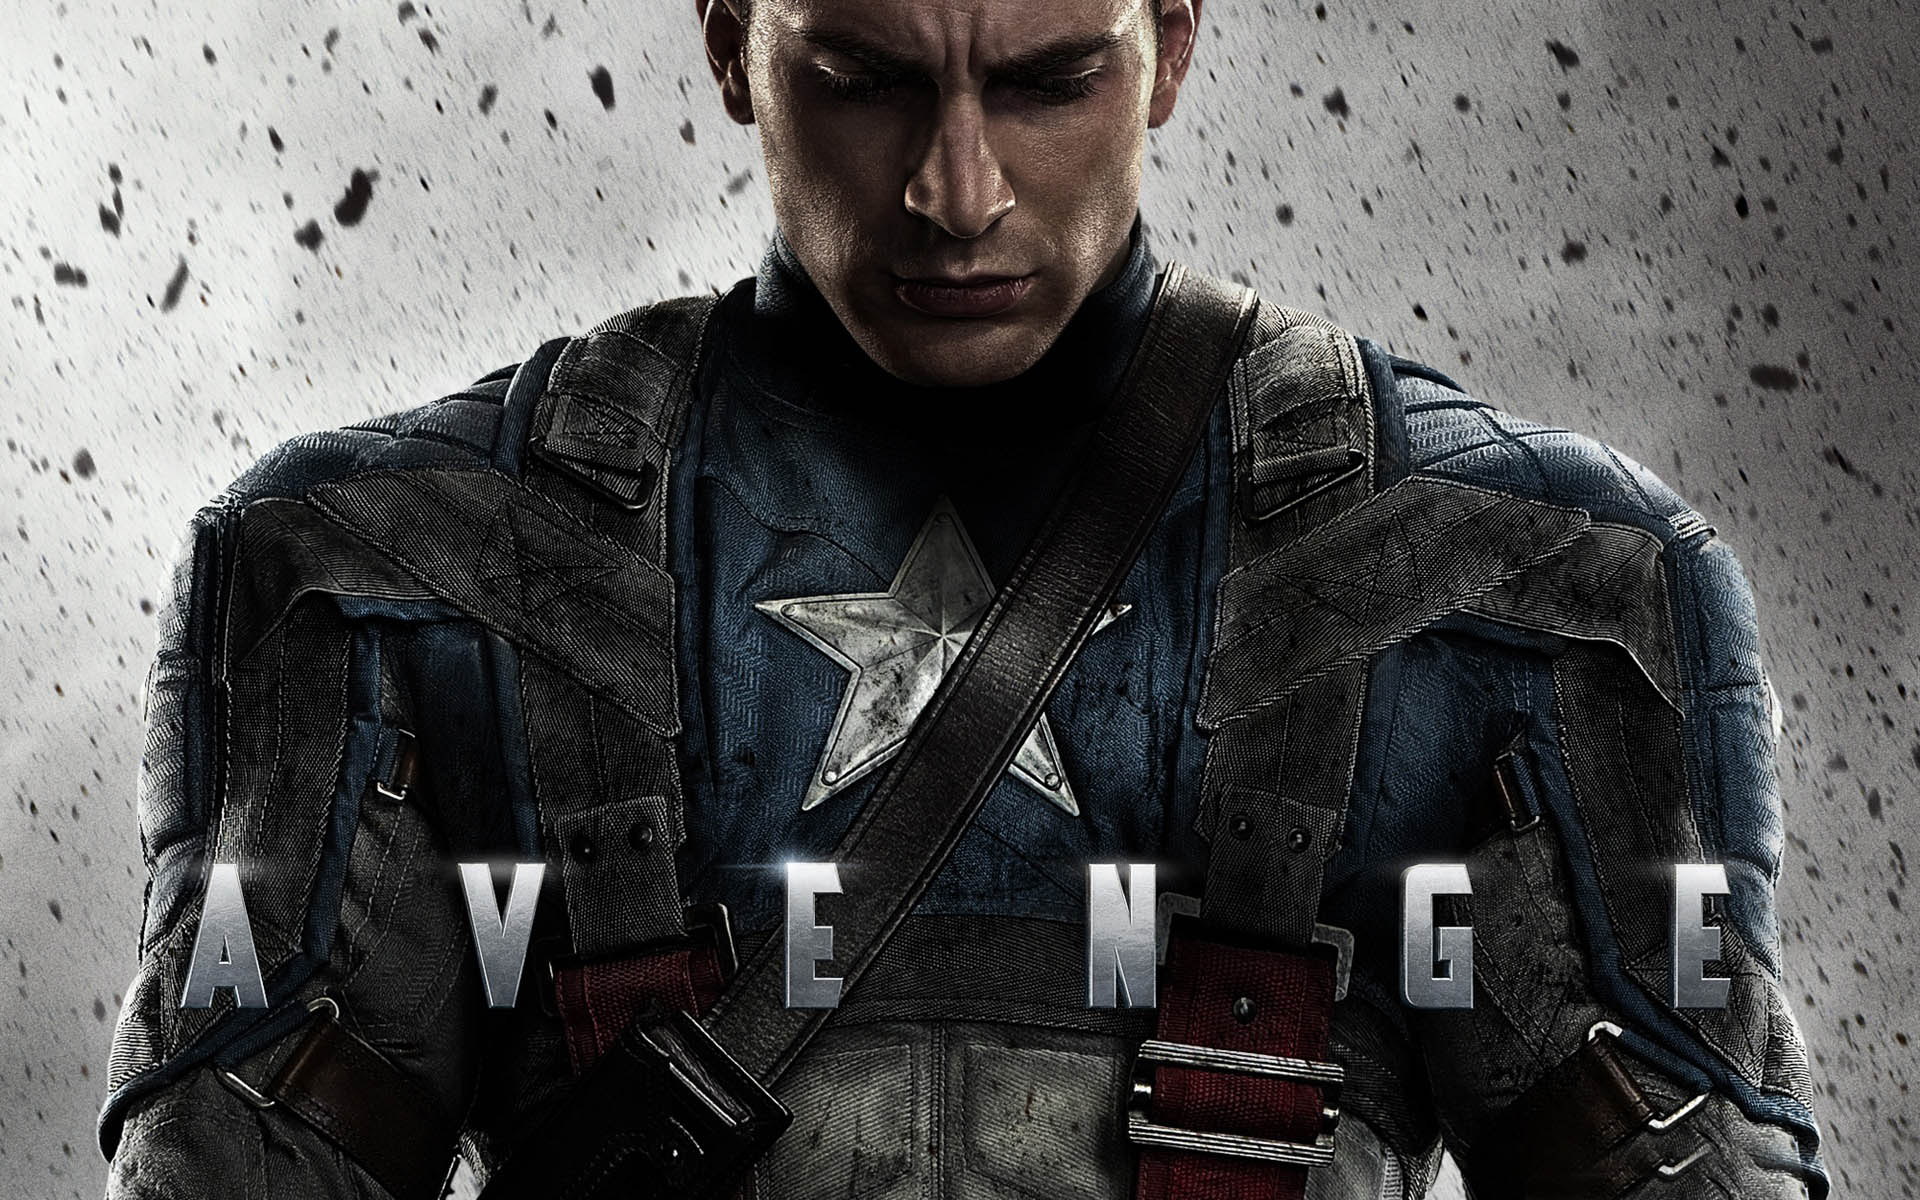 2887324-captain_america_movie_2011